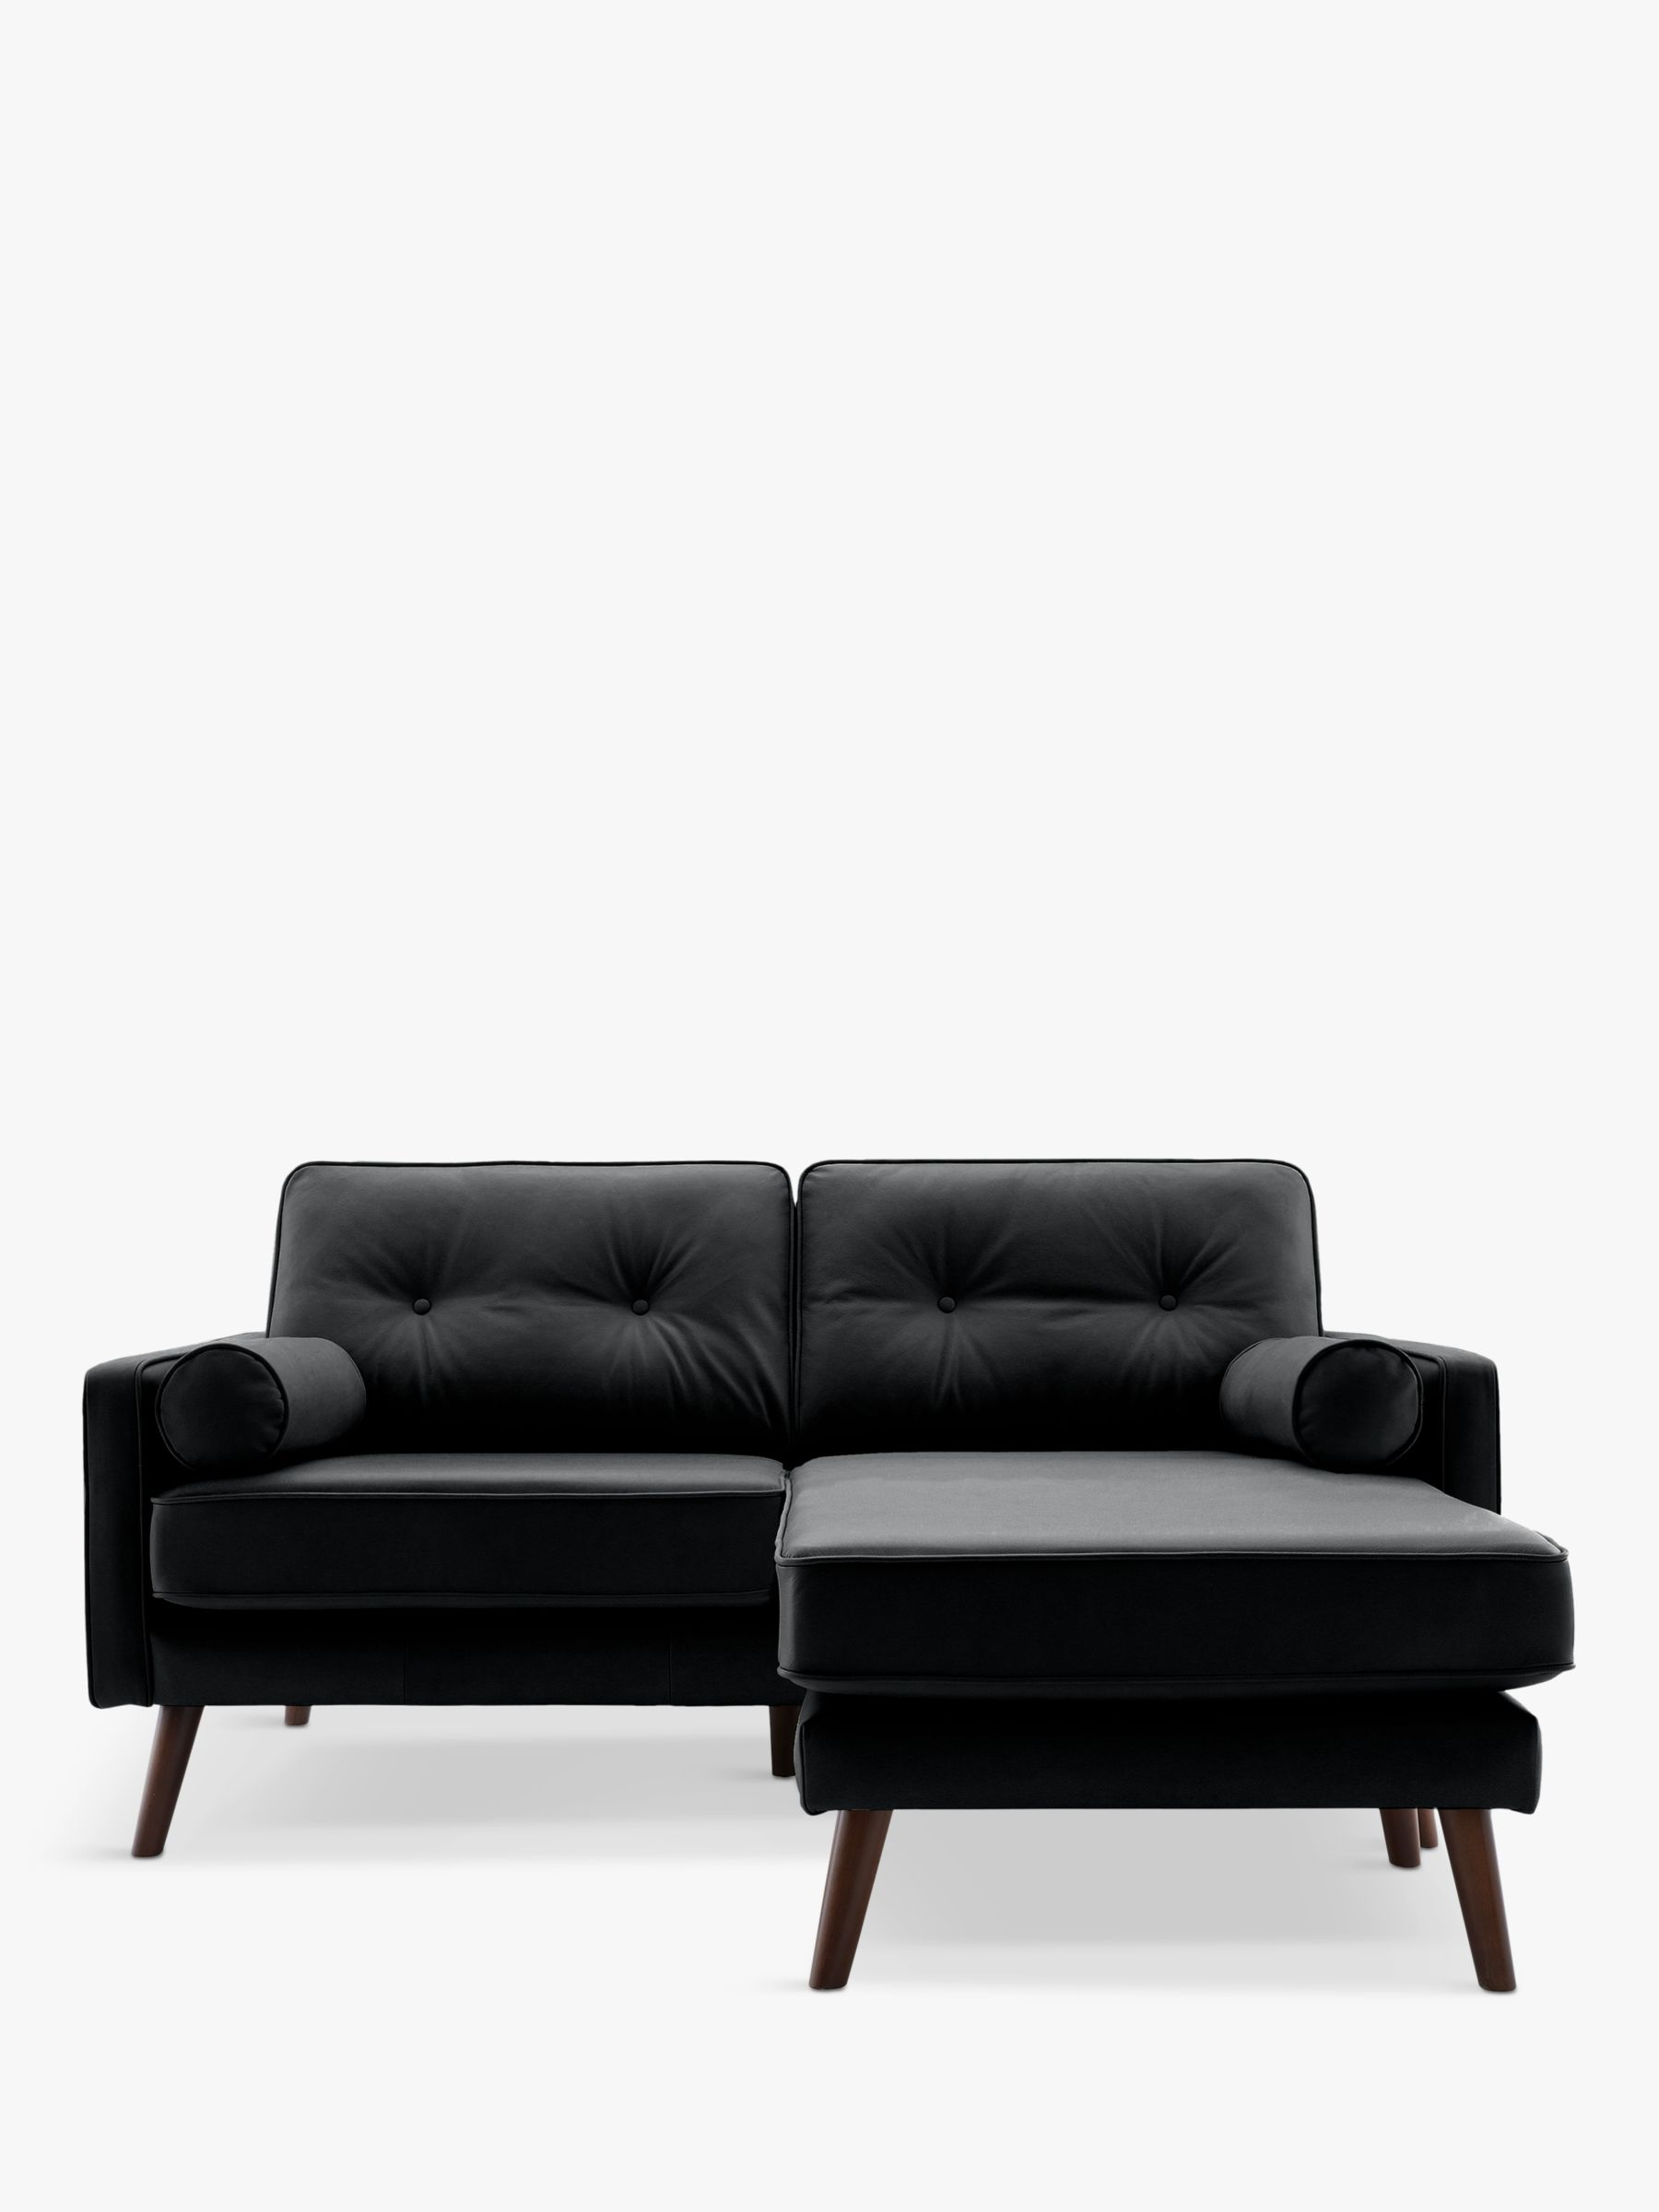 G Plan Vintage The Sixty Five Medium 2 Seater Chaise End Leather Sofa Capri Black At John Lewis Partners